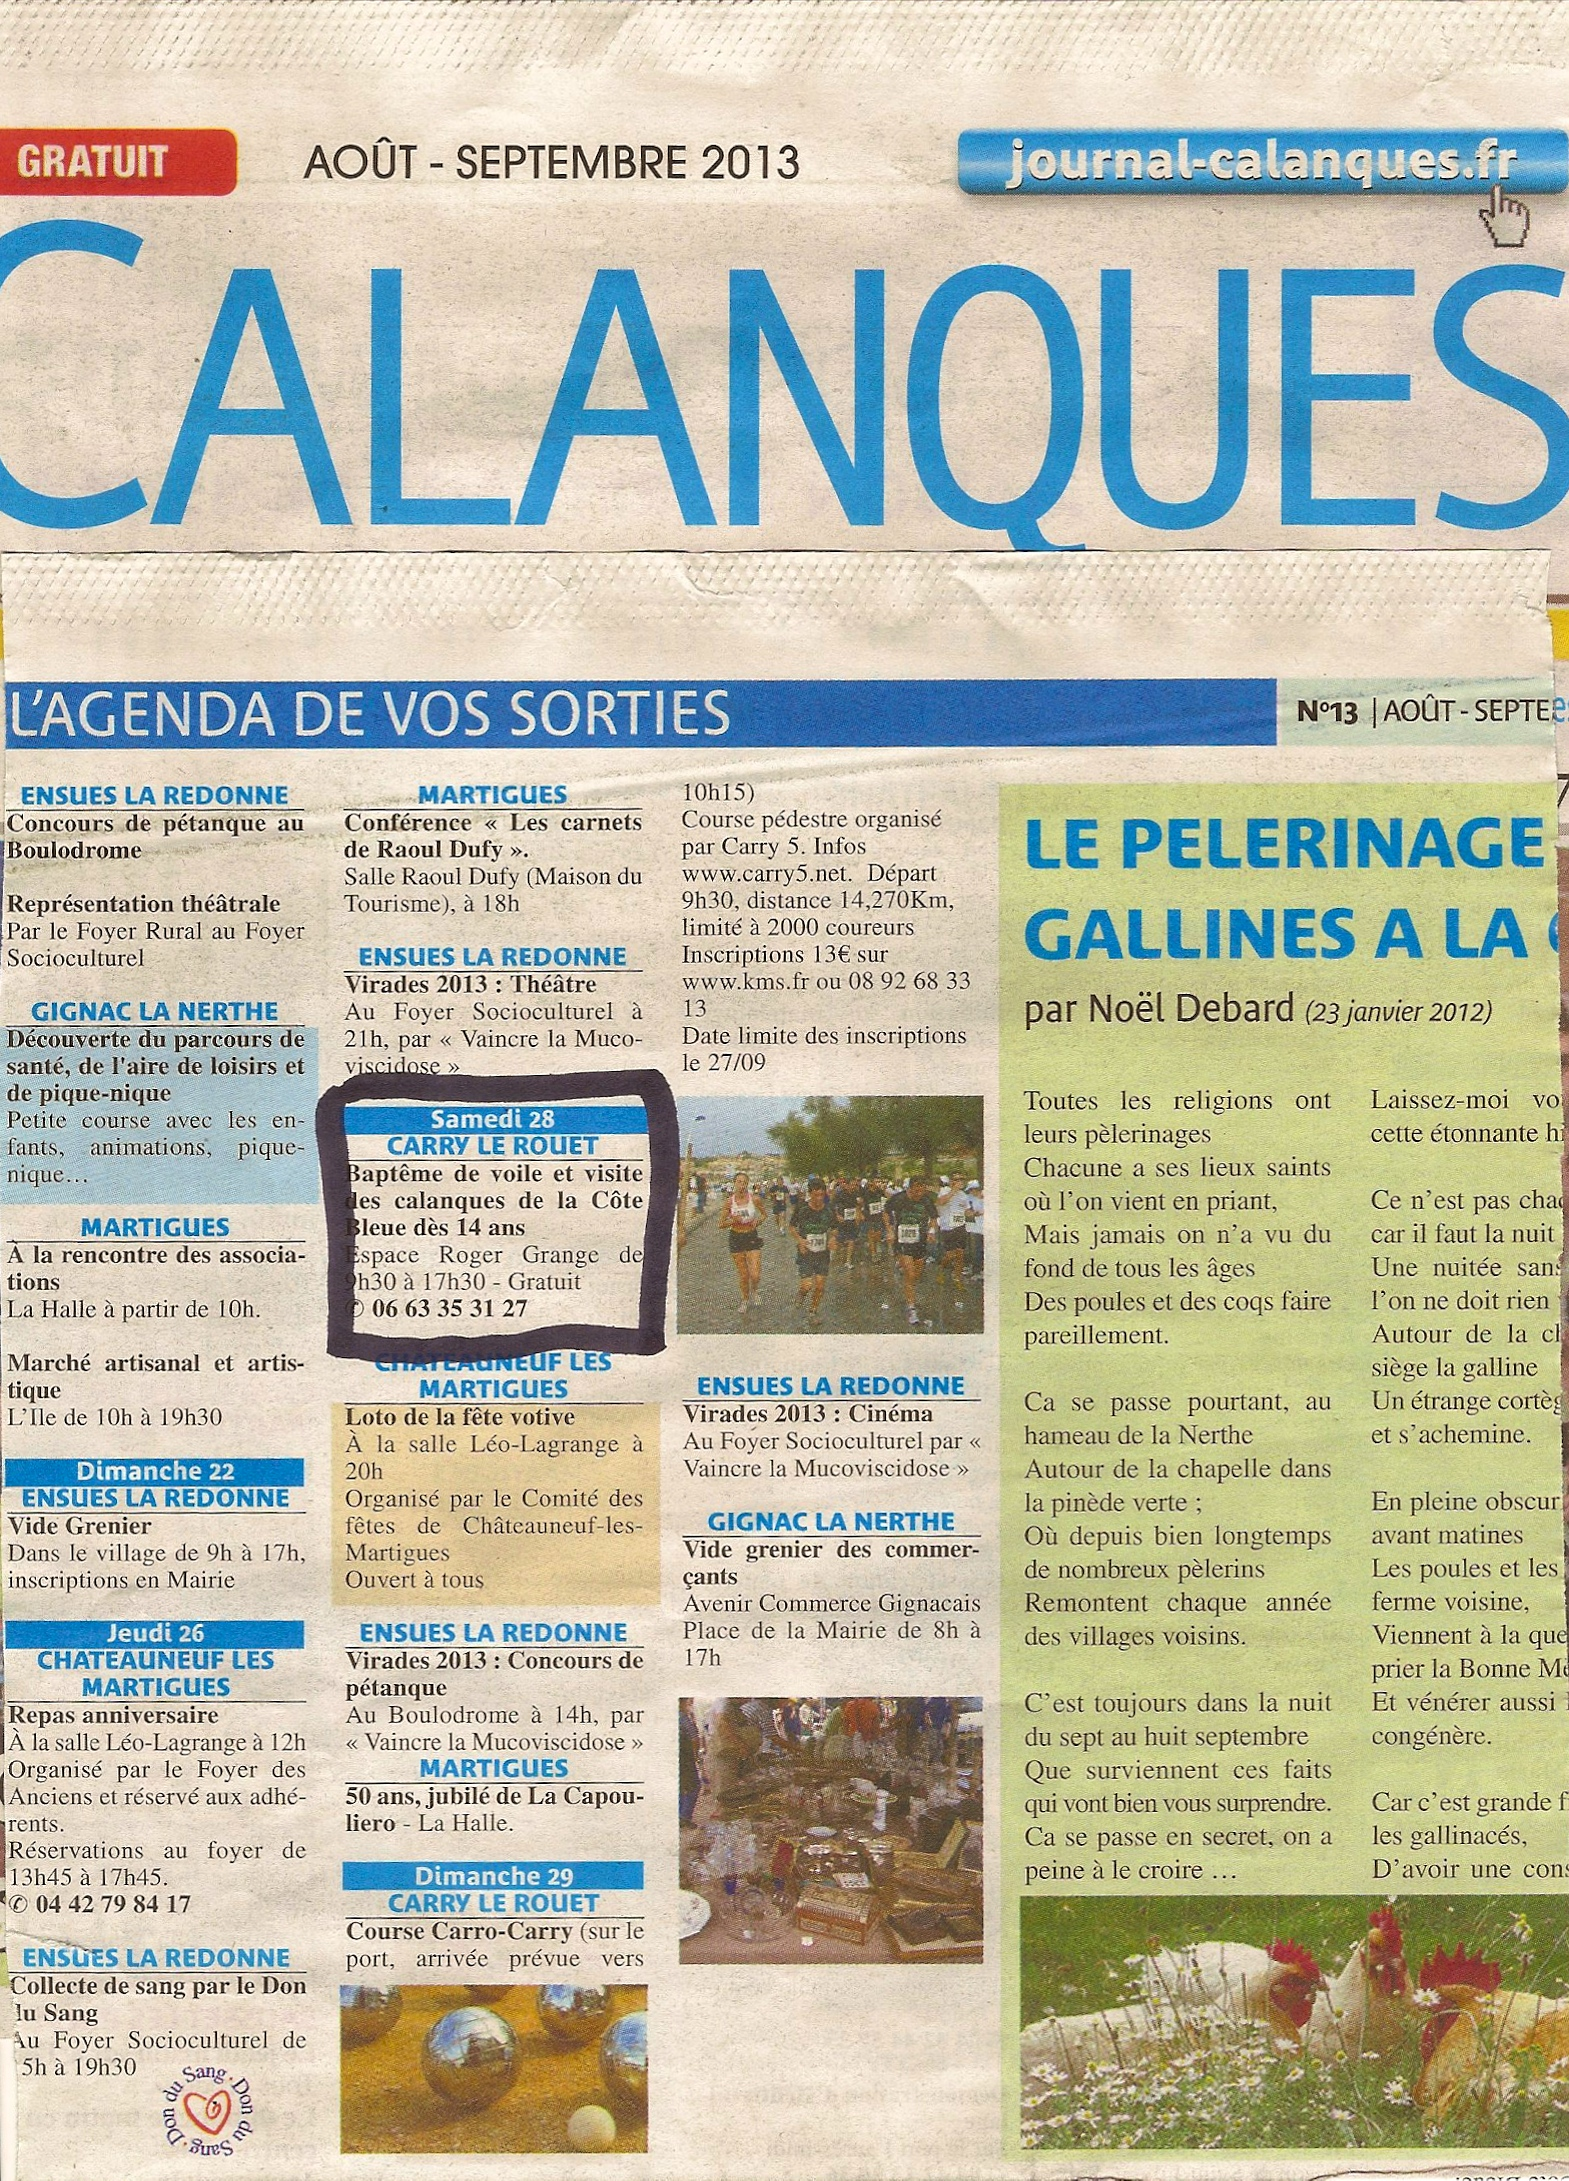 k journal Calanques